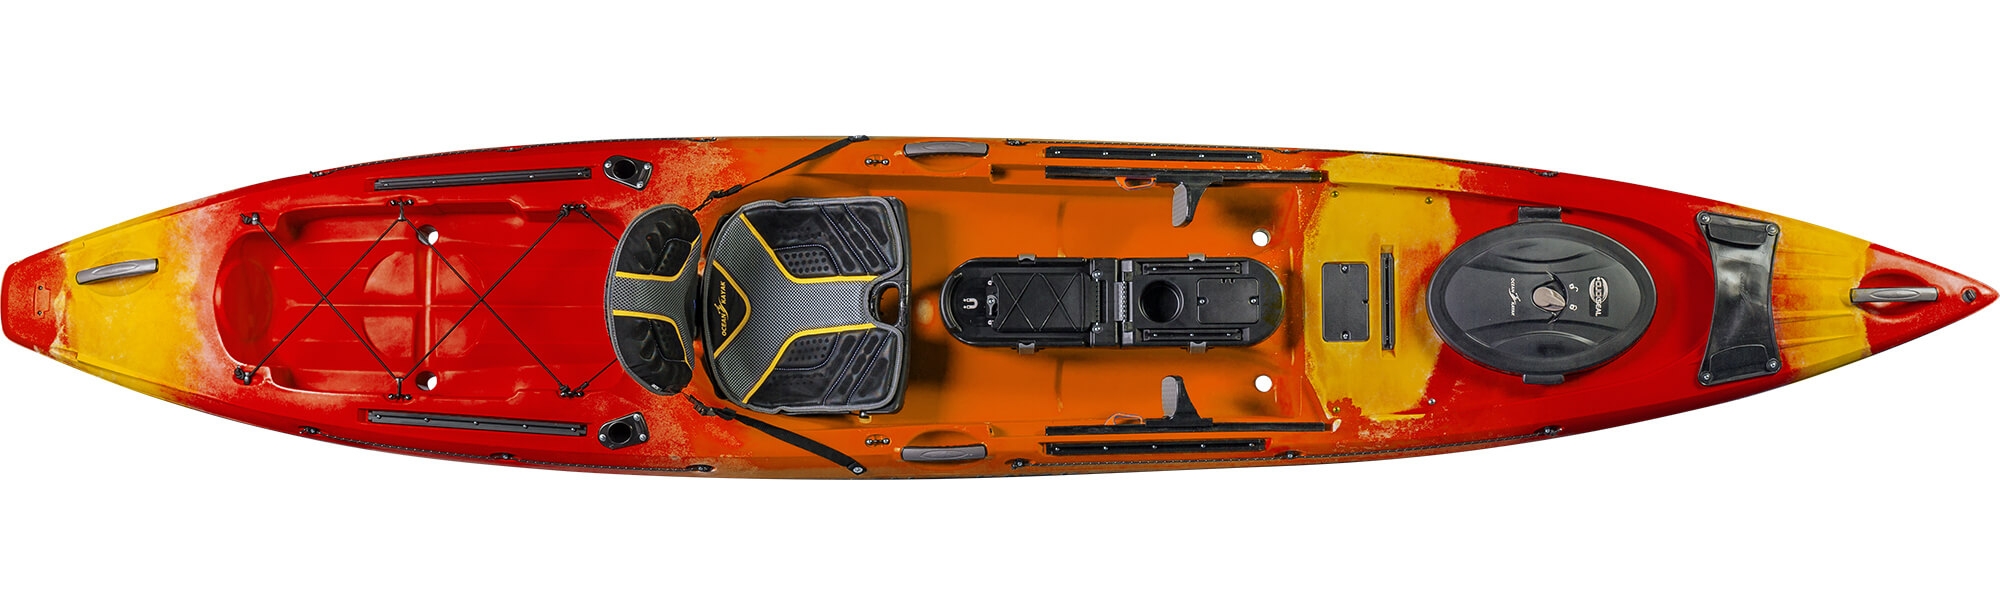 Ocean Kayak Trident 13 Angler Fishing Kayak 2019